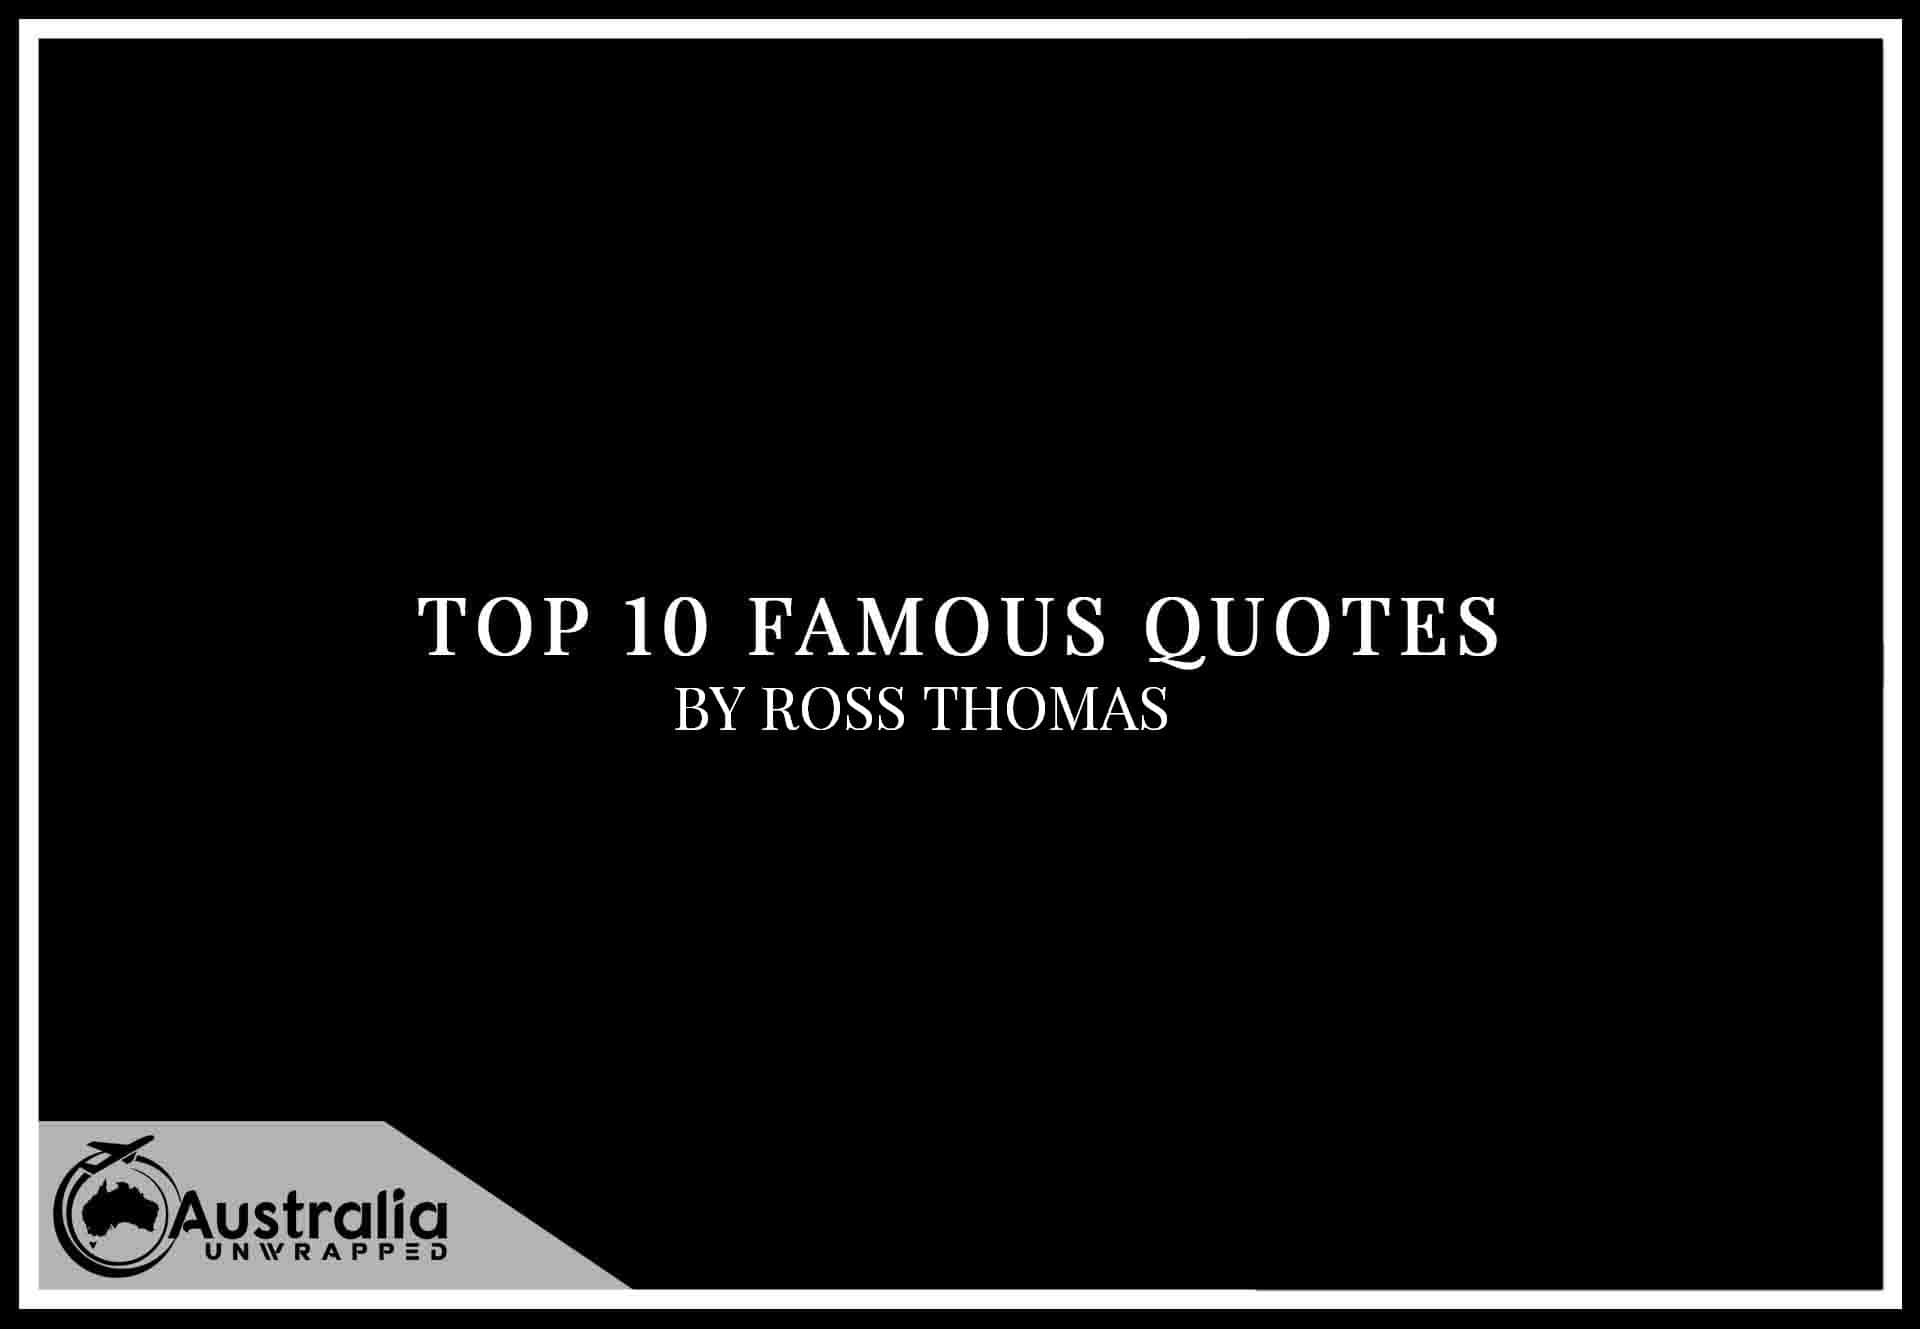 Top 10 Famous Quotes by Author Ross Thomas